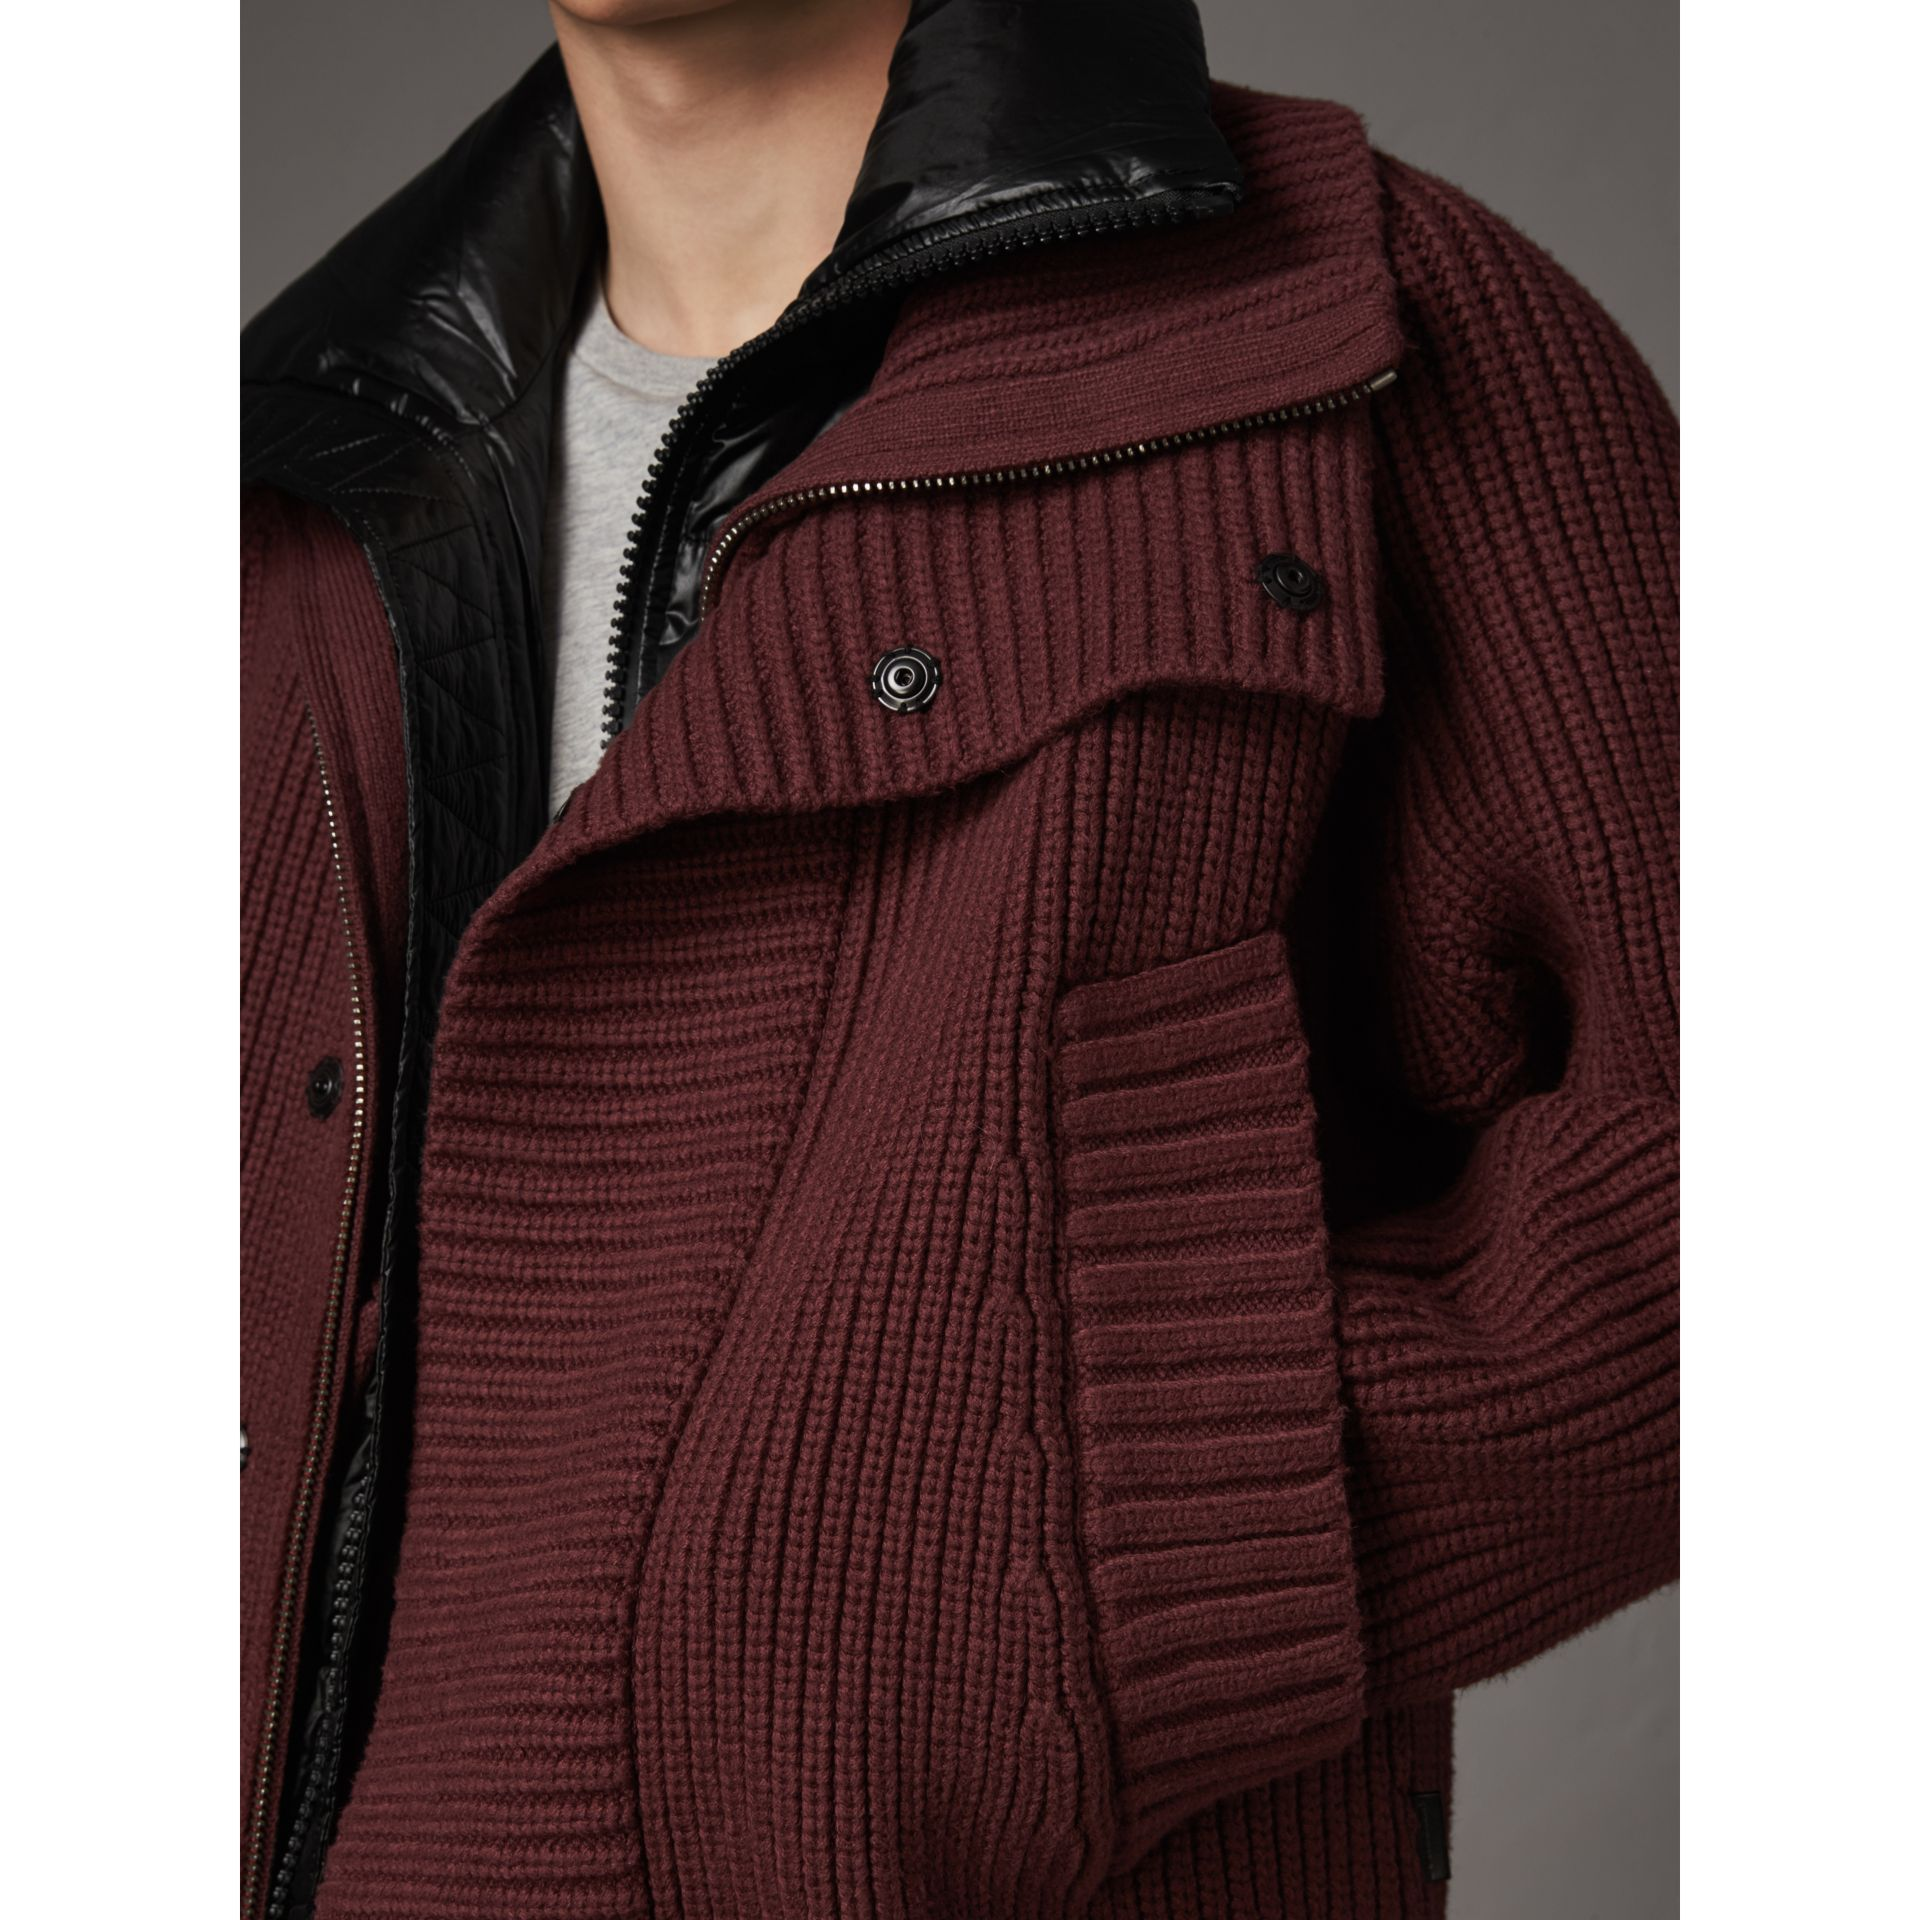 Rib Knit Cotton Blend Jacket with Down-filled Gilet in Mahogany Red - Men | Burberry Canada - gallery image 1